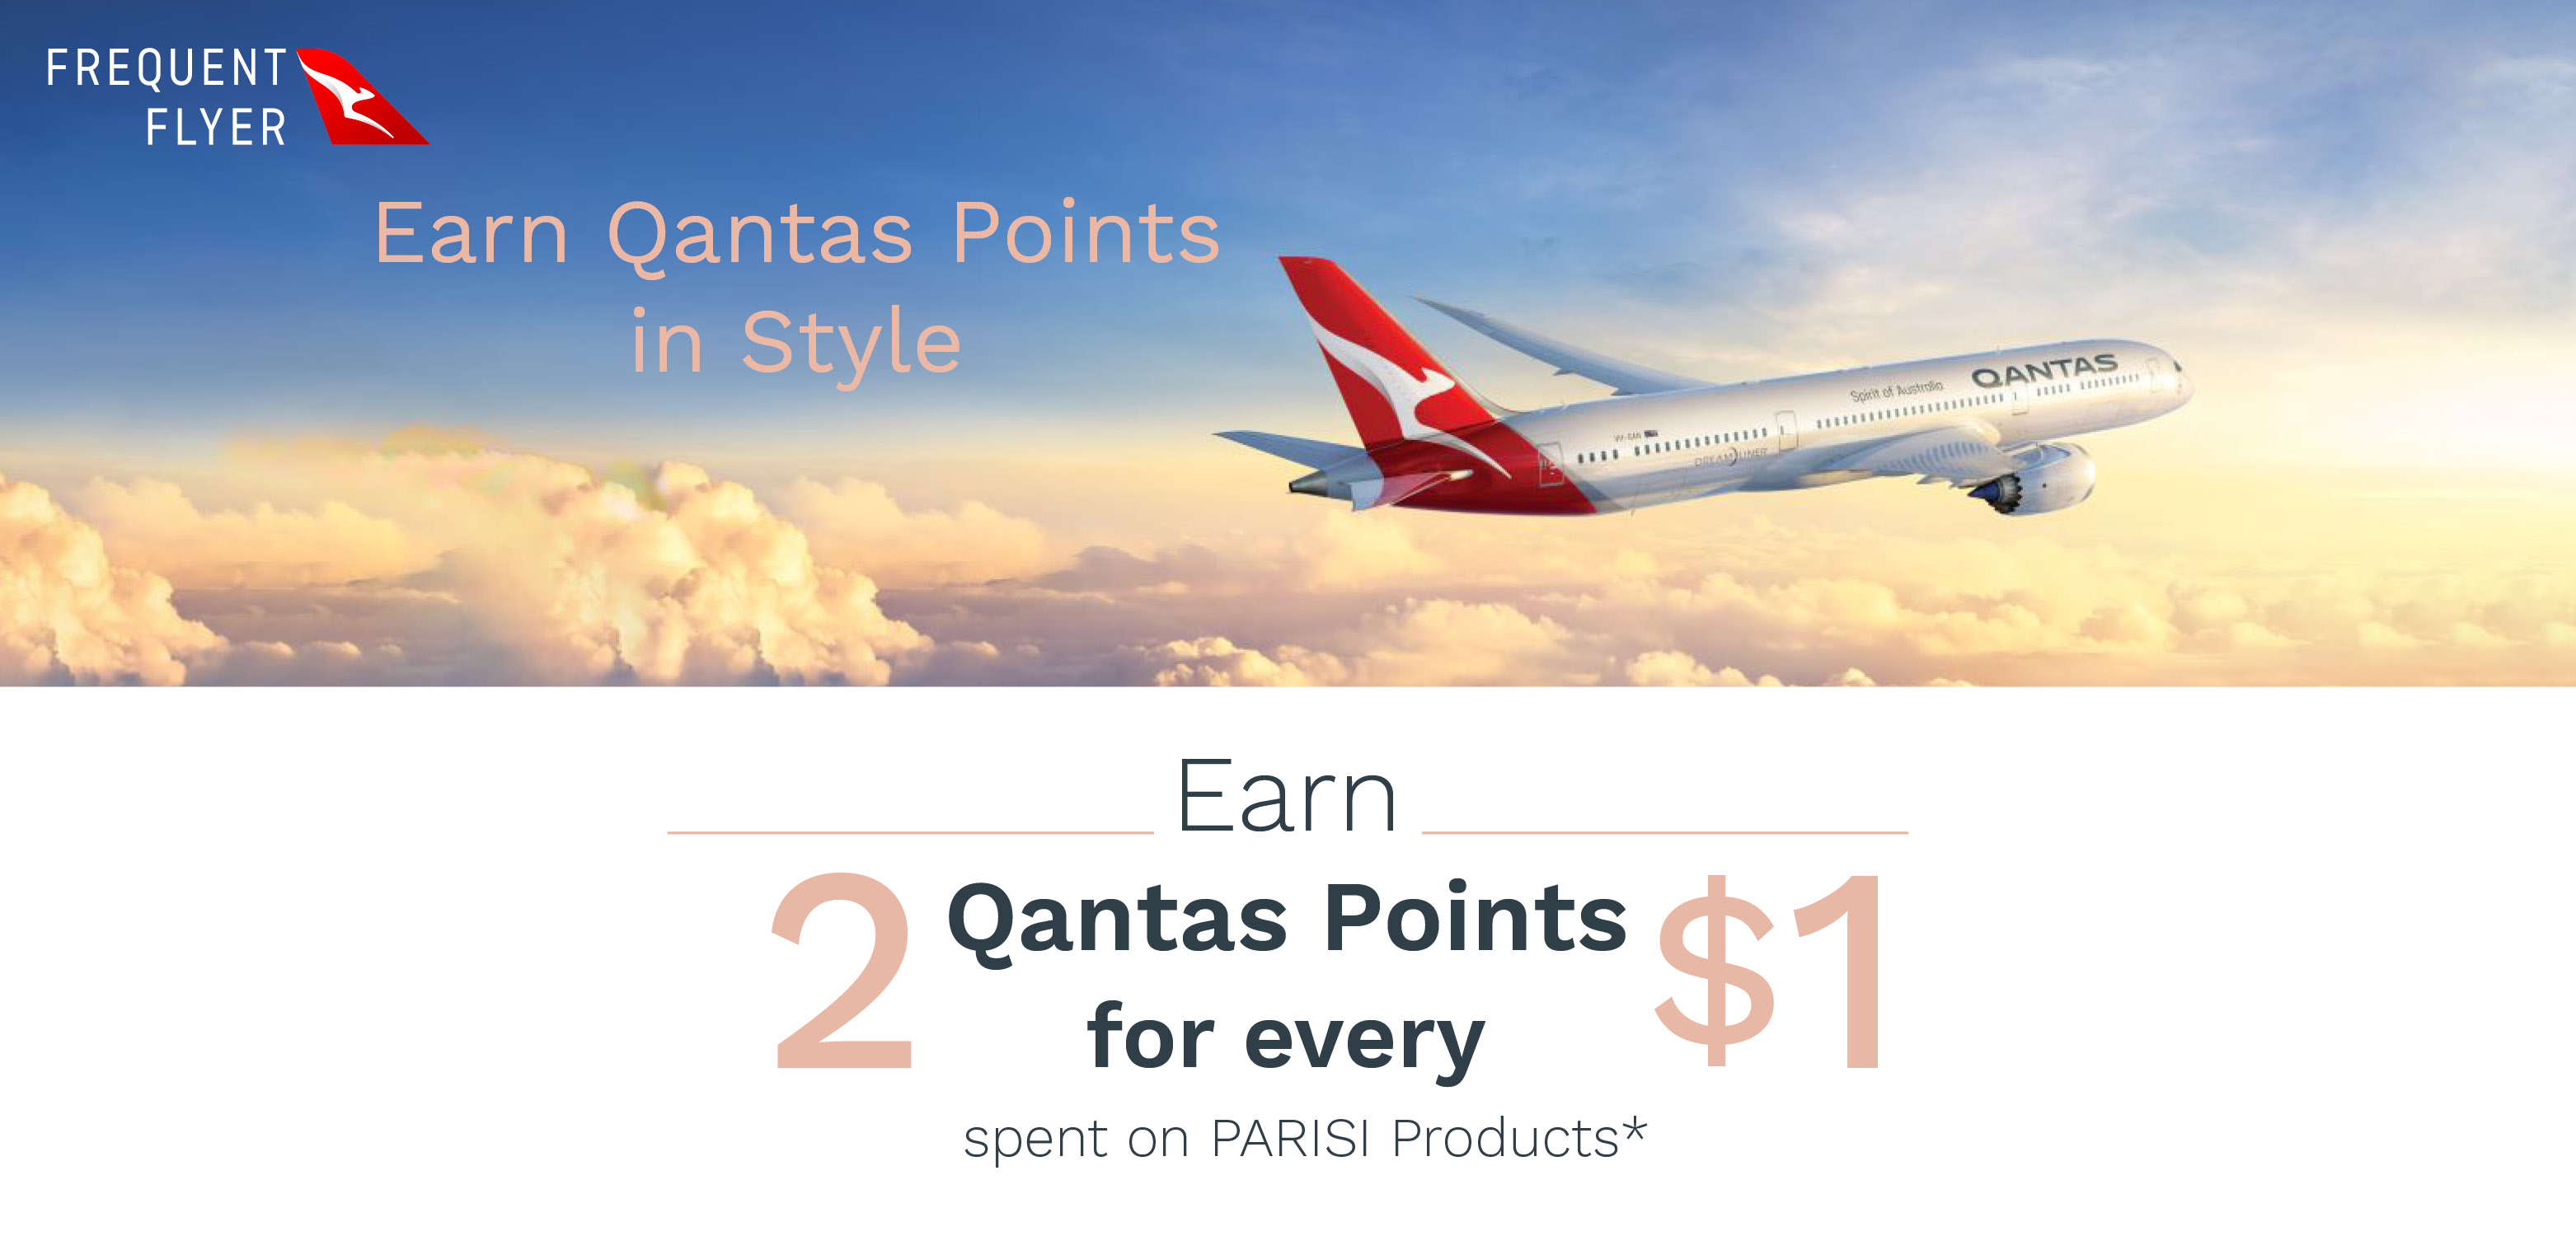 Earn Qantas Points in Style with PARISI